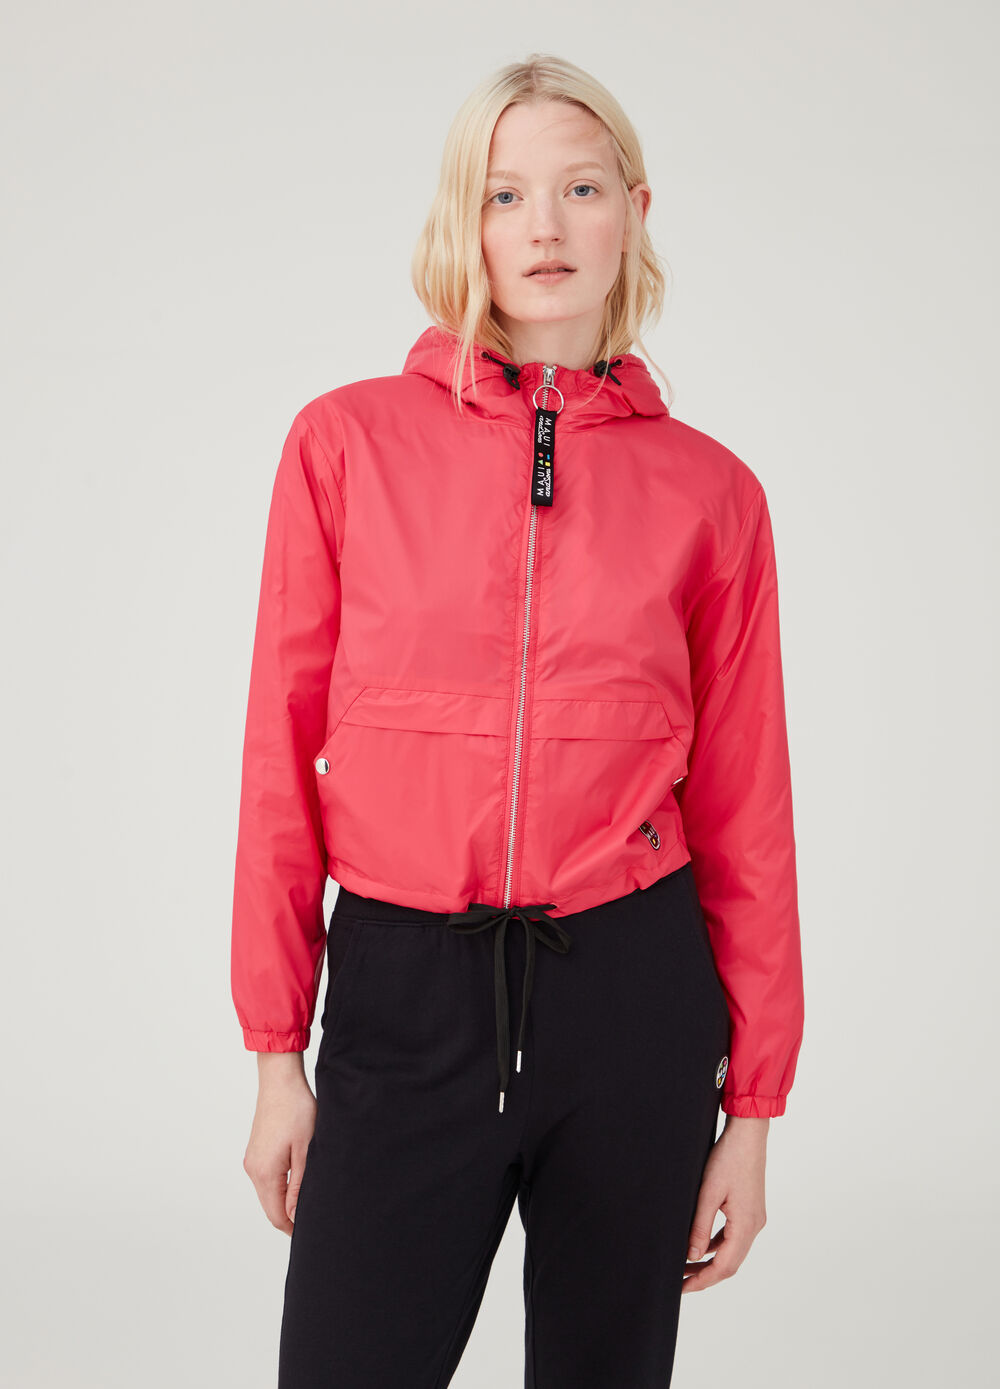 Nylon cagoule with hood by Maui and Sons